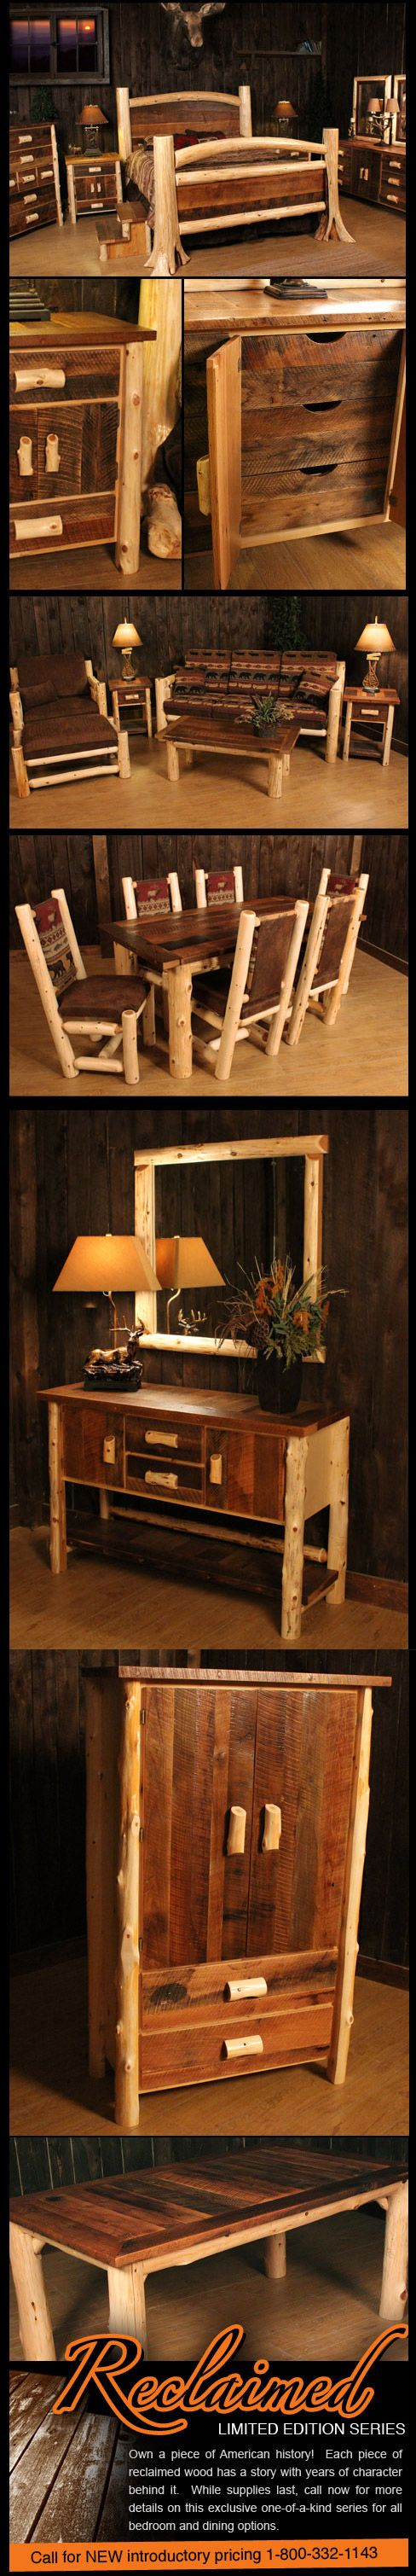 25 best ideas about log cabin furniture on pinterest for Log cabin furniture canada